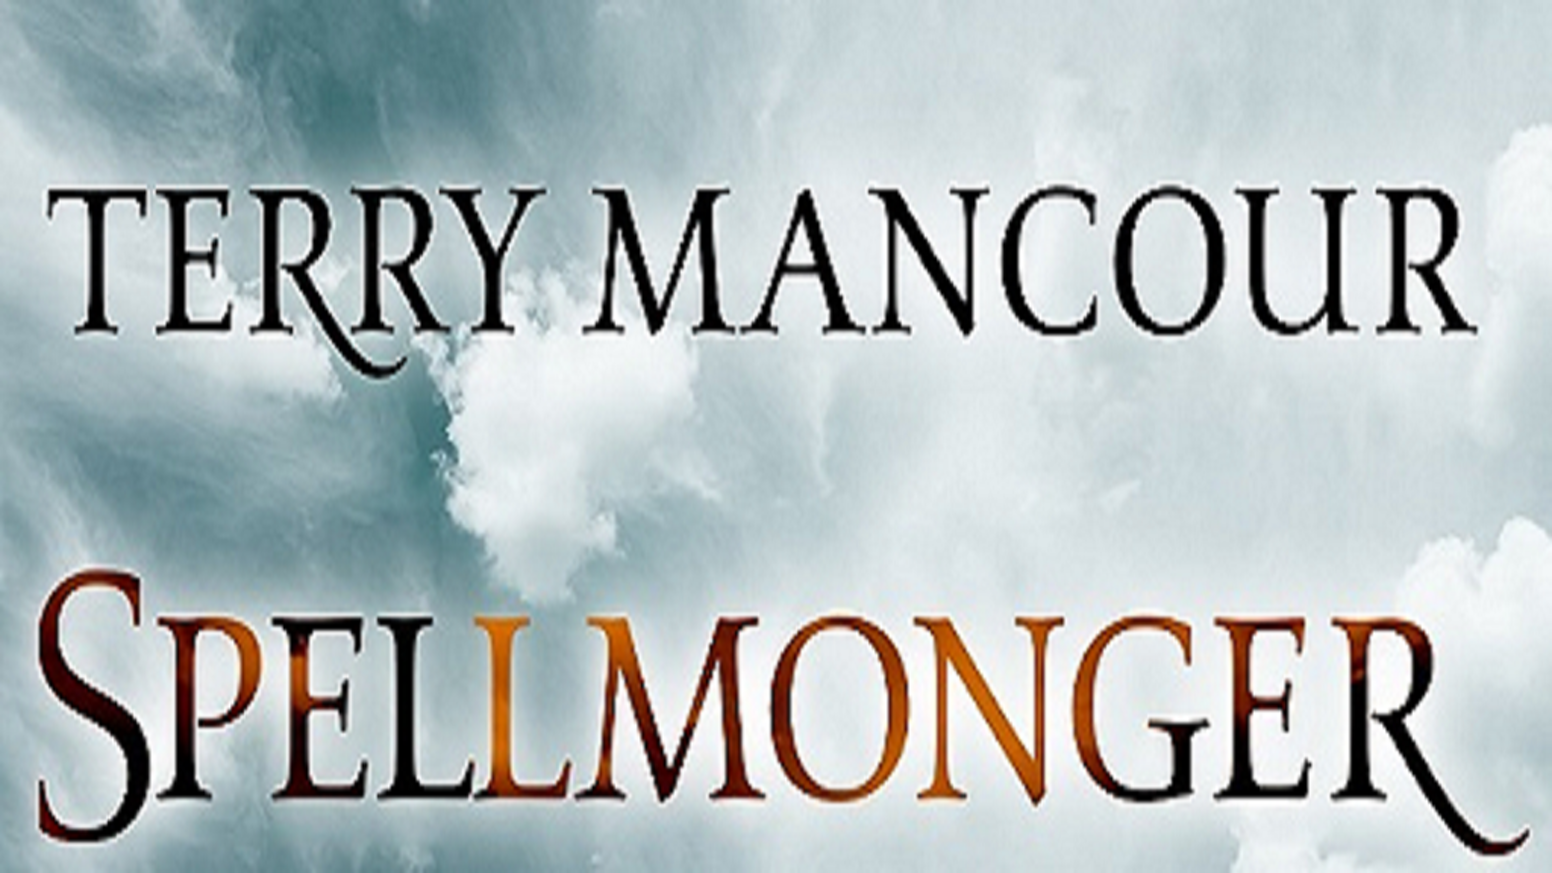 Terry Mancour's Spellmonger by Battlefield Press, Inc